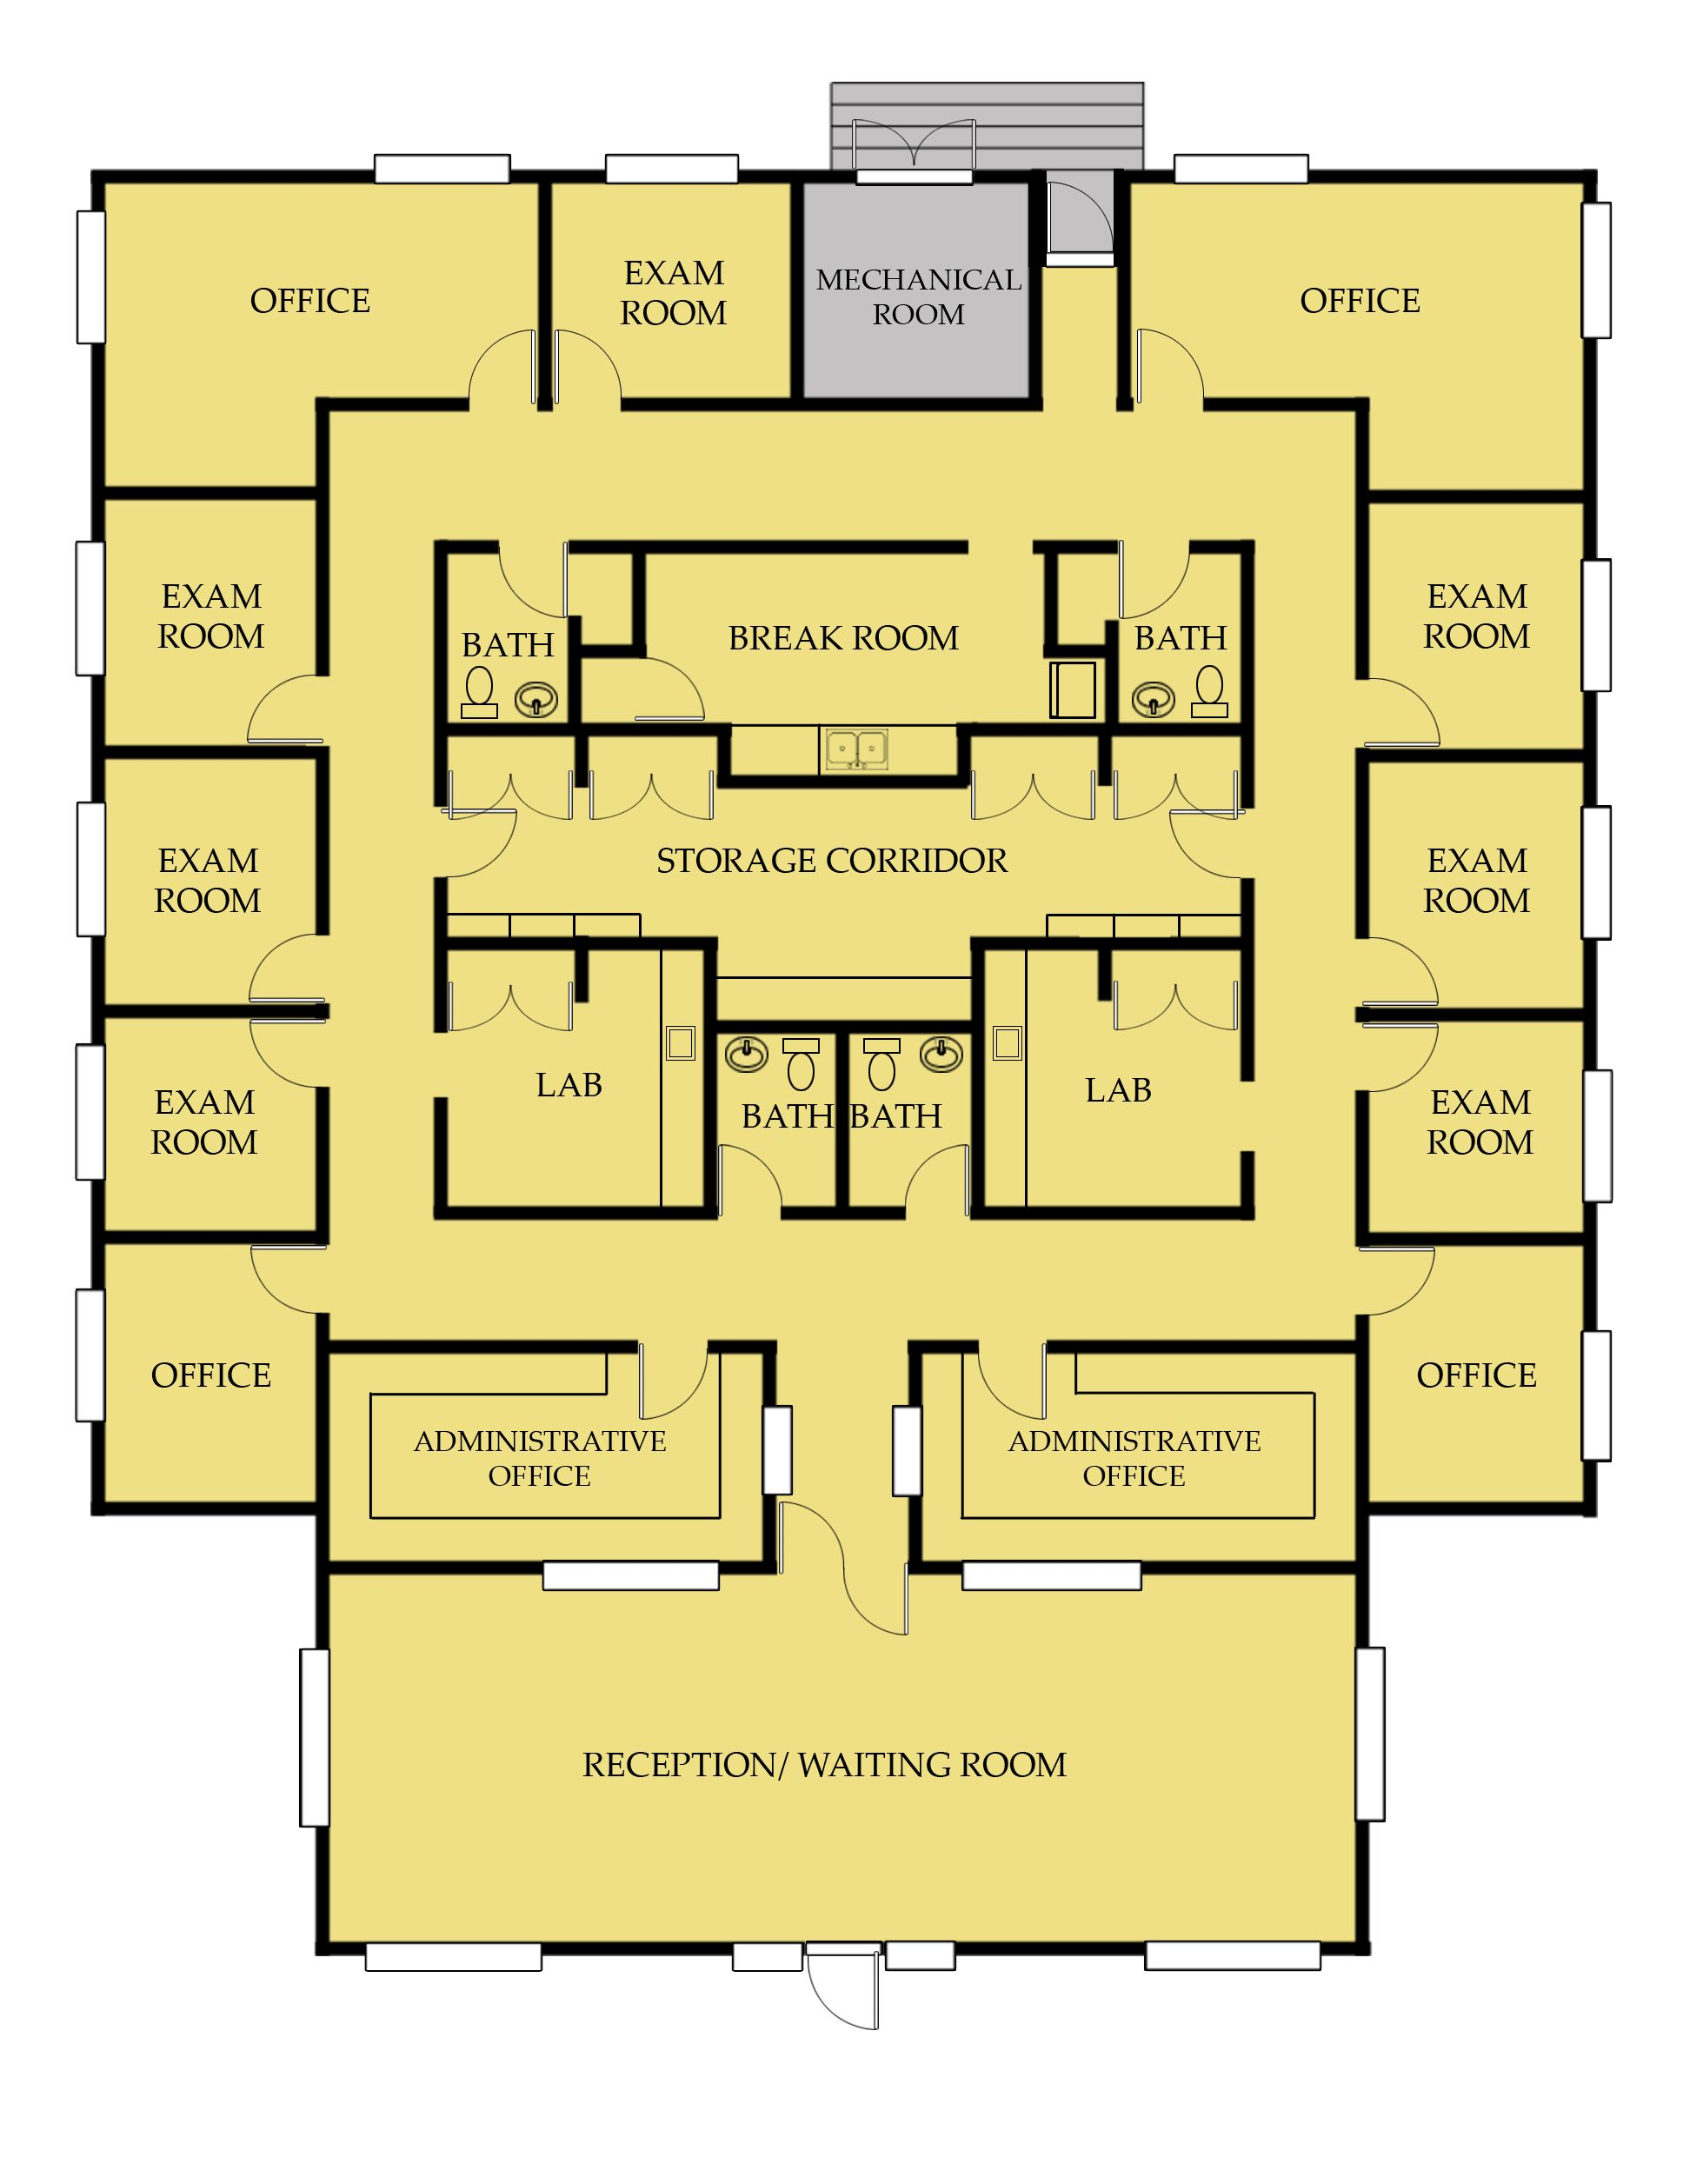 Medical office floor plan pinteres for Office layout design